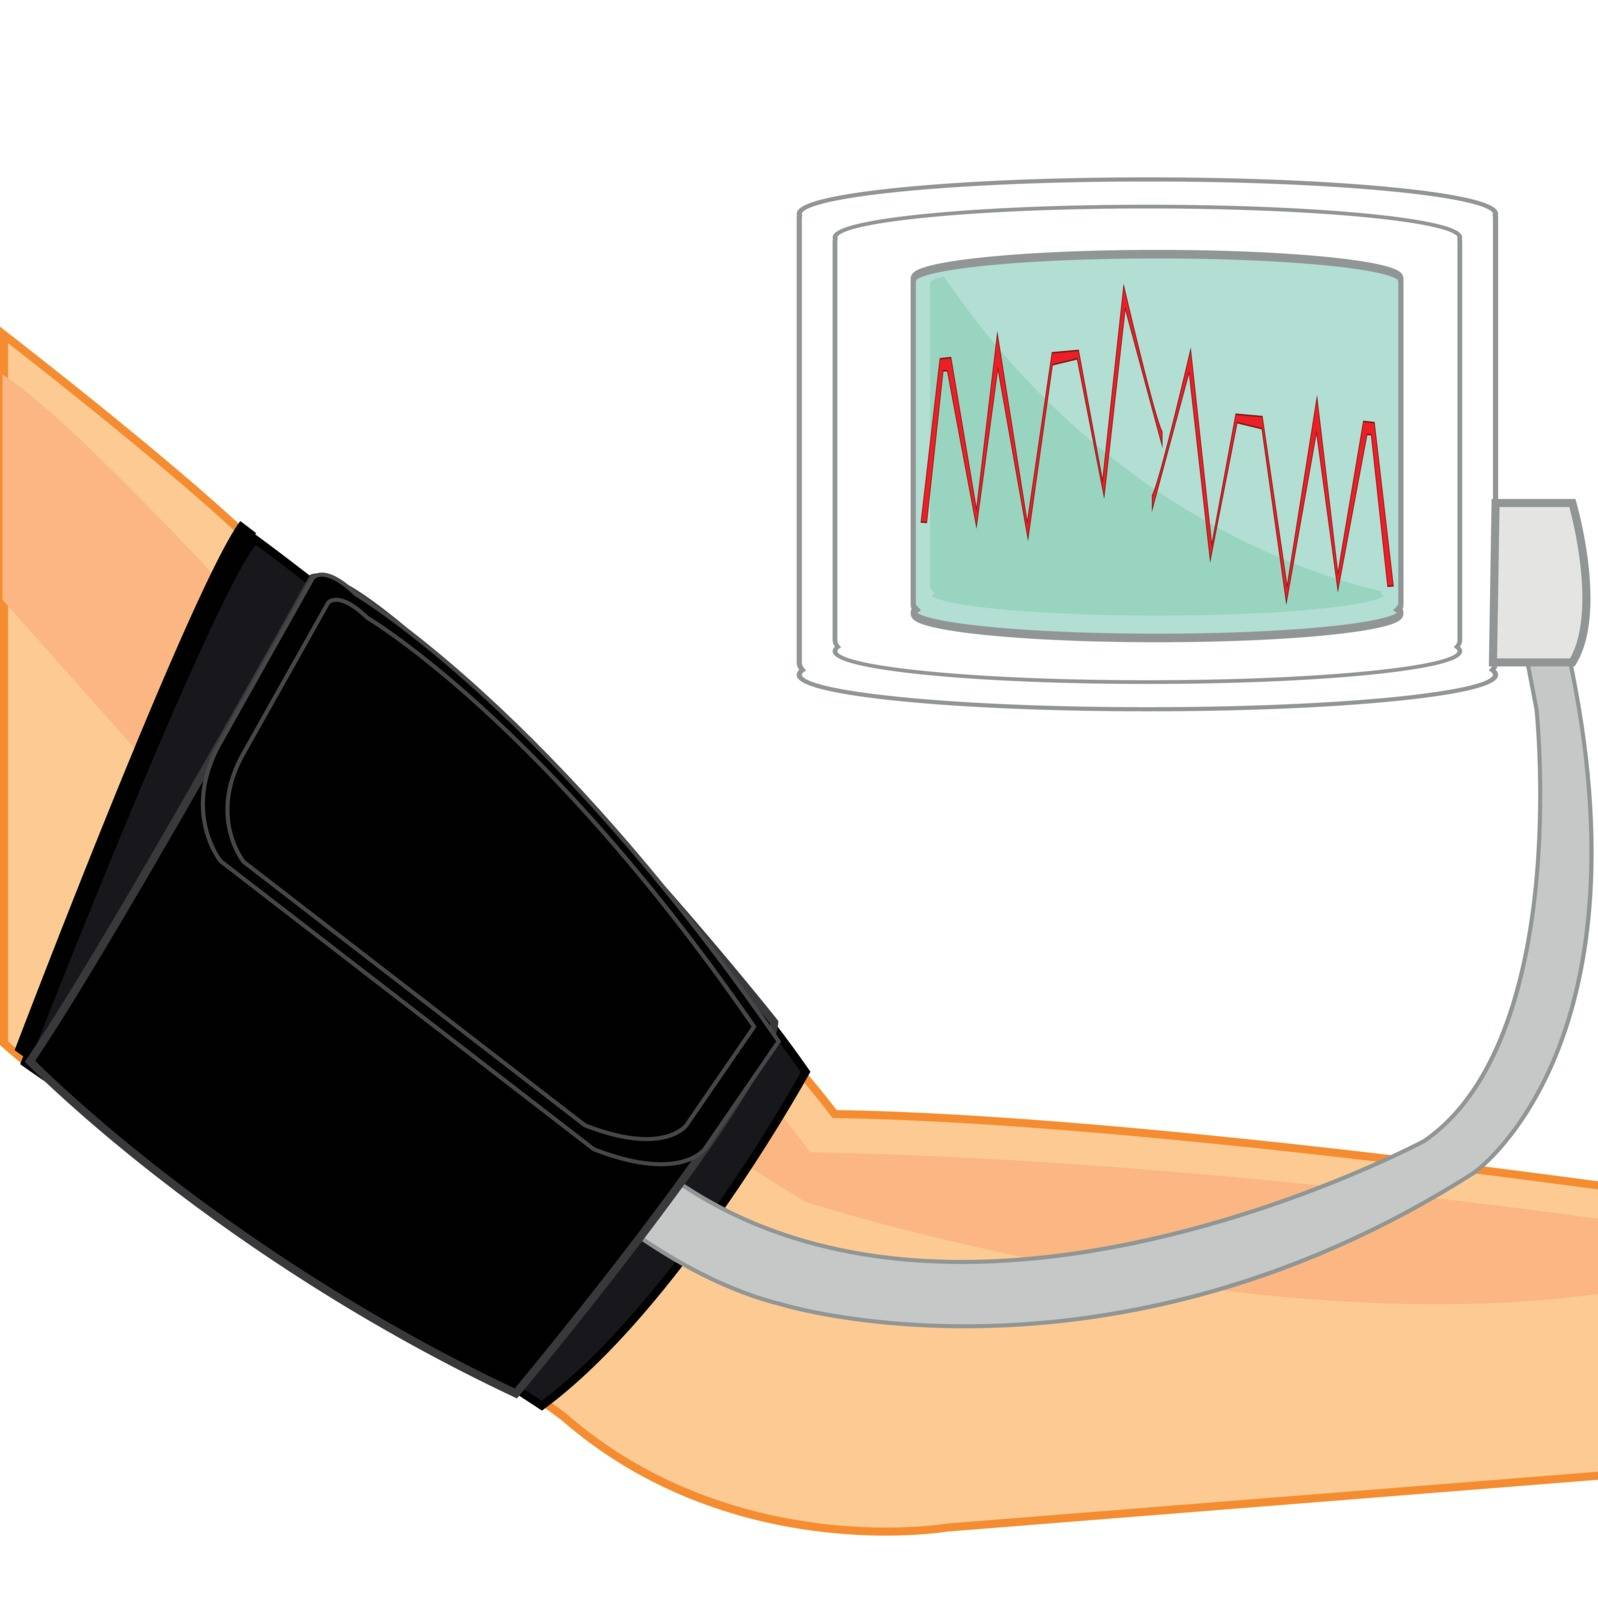 Hand of the person and instrument for measurement of the arterial pressure